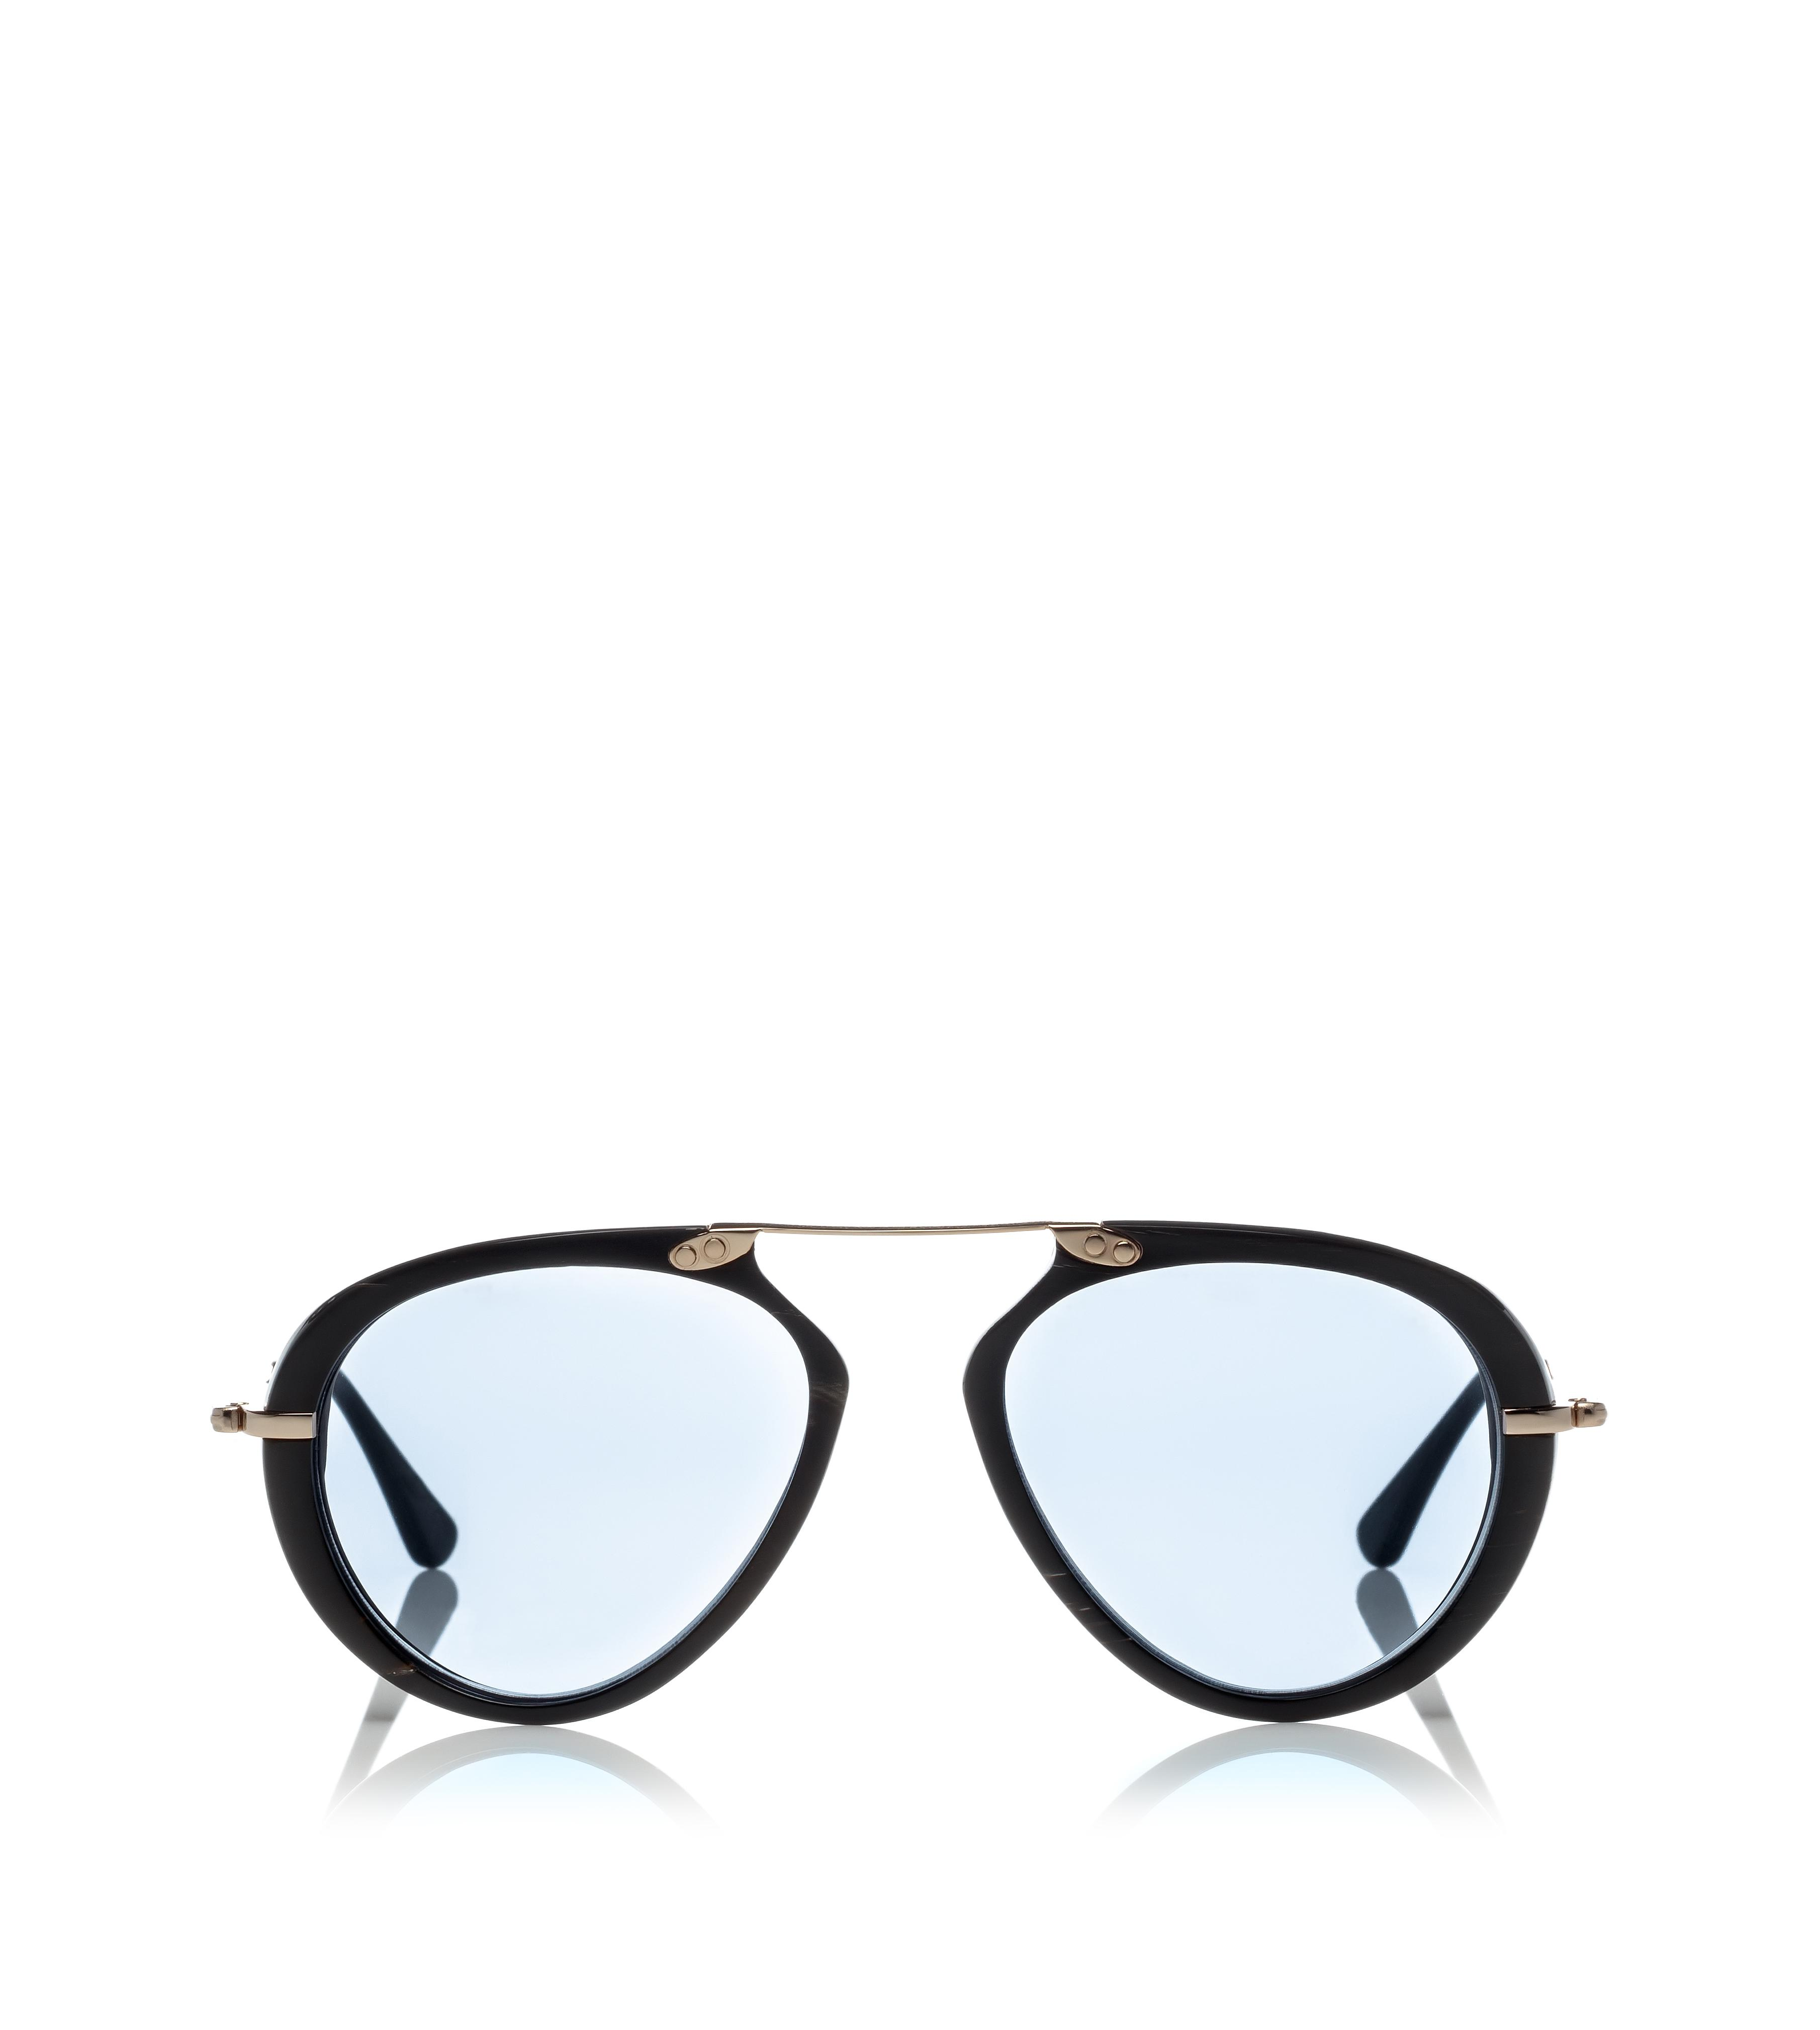 Designer Eyeglass Frames Tom Ford : Optical - Eyeglass Frames by TOM FORD - Designer Frames ...